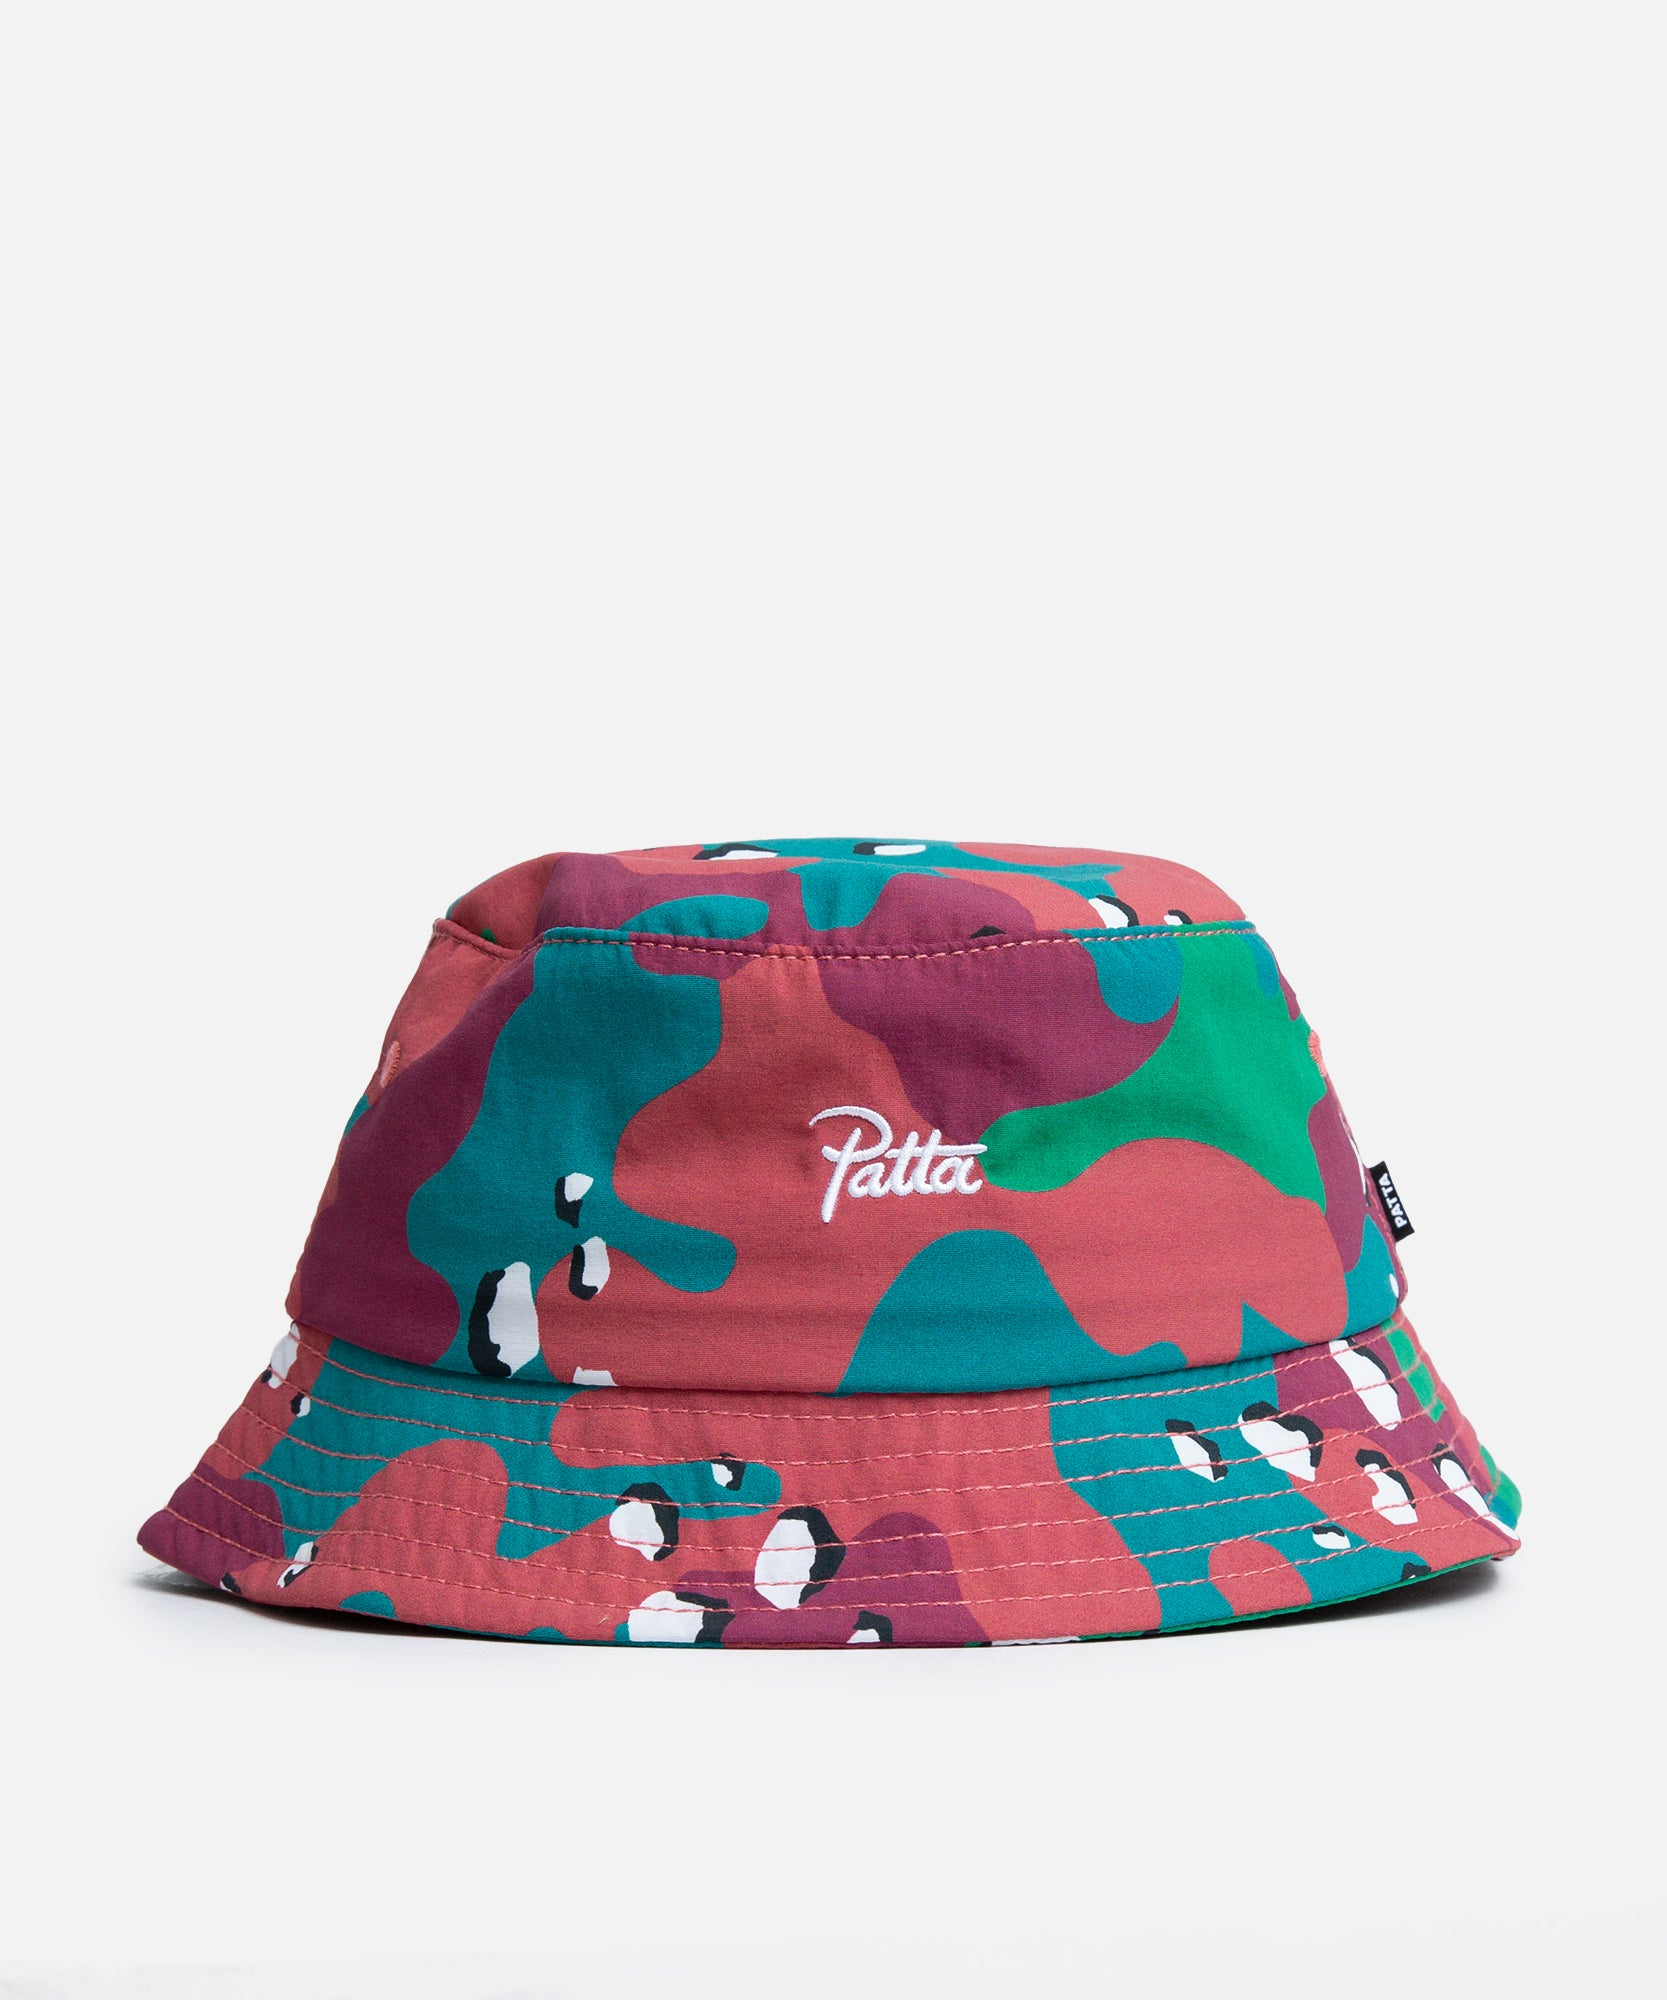 Patta Nylon Bucket Hat (Camo/Multi)